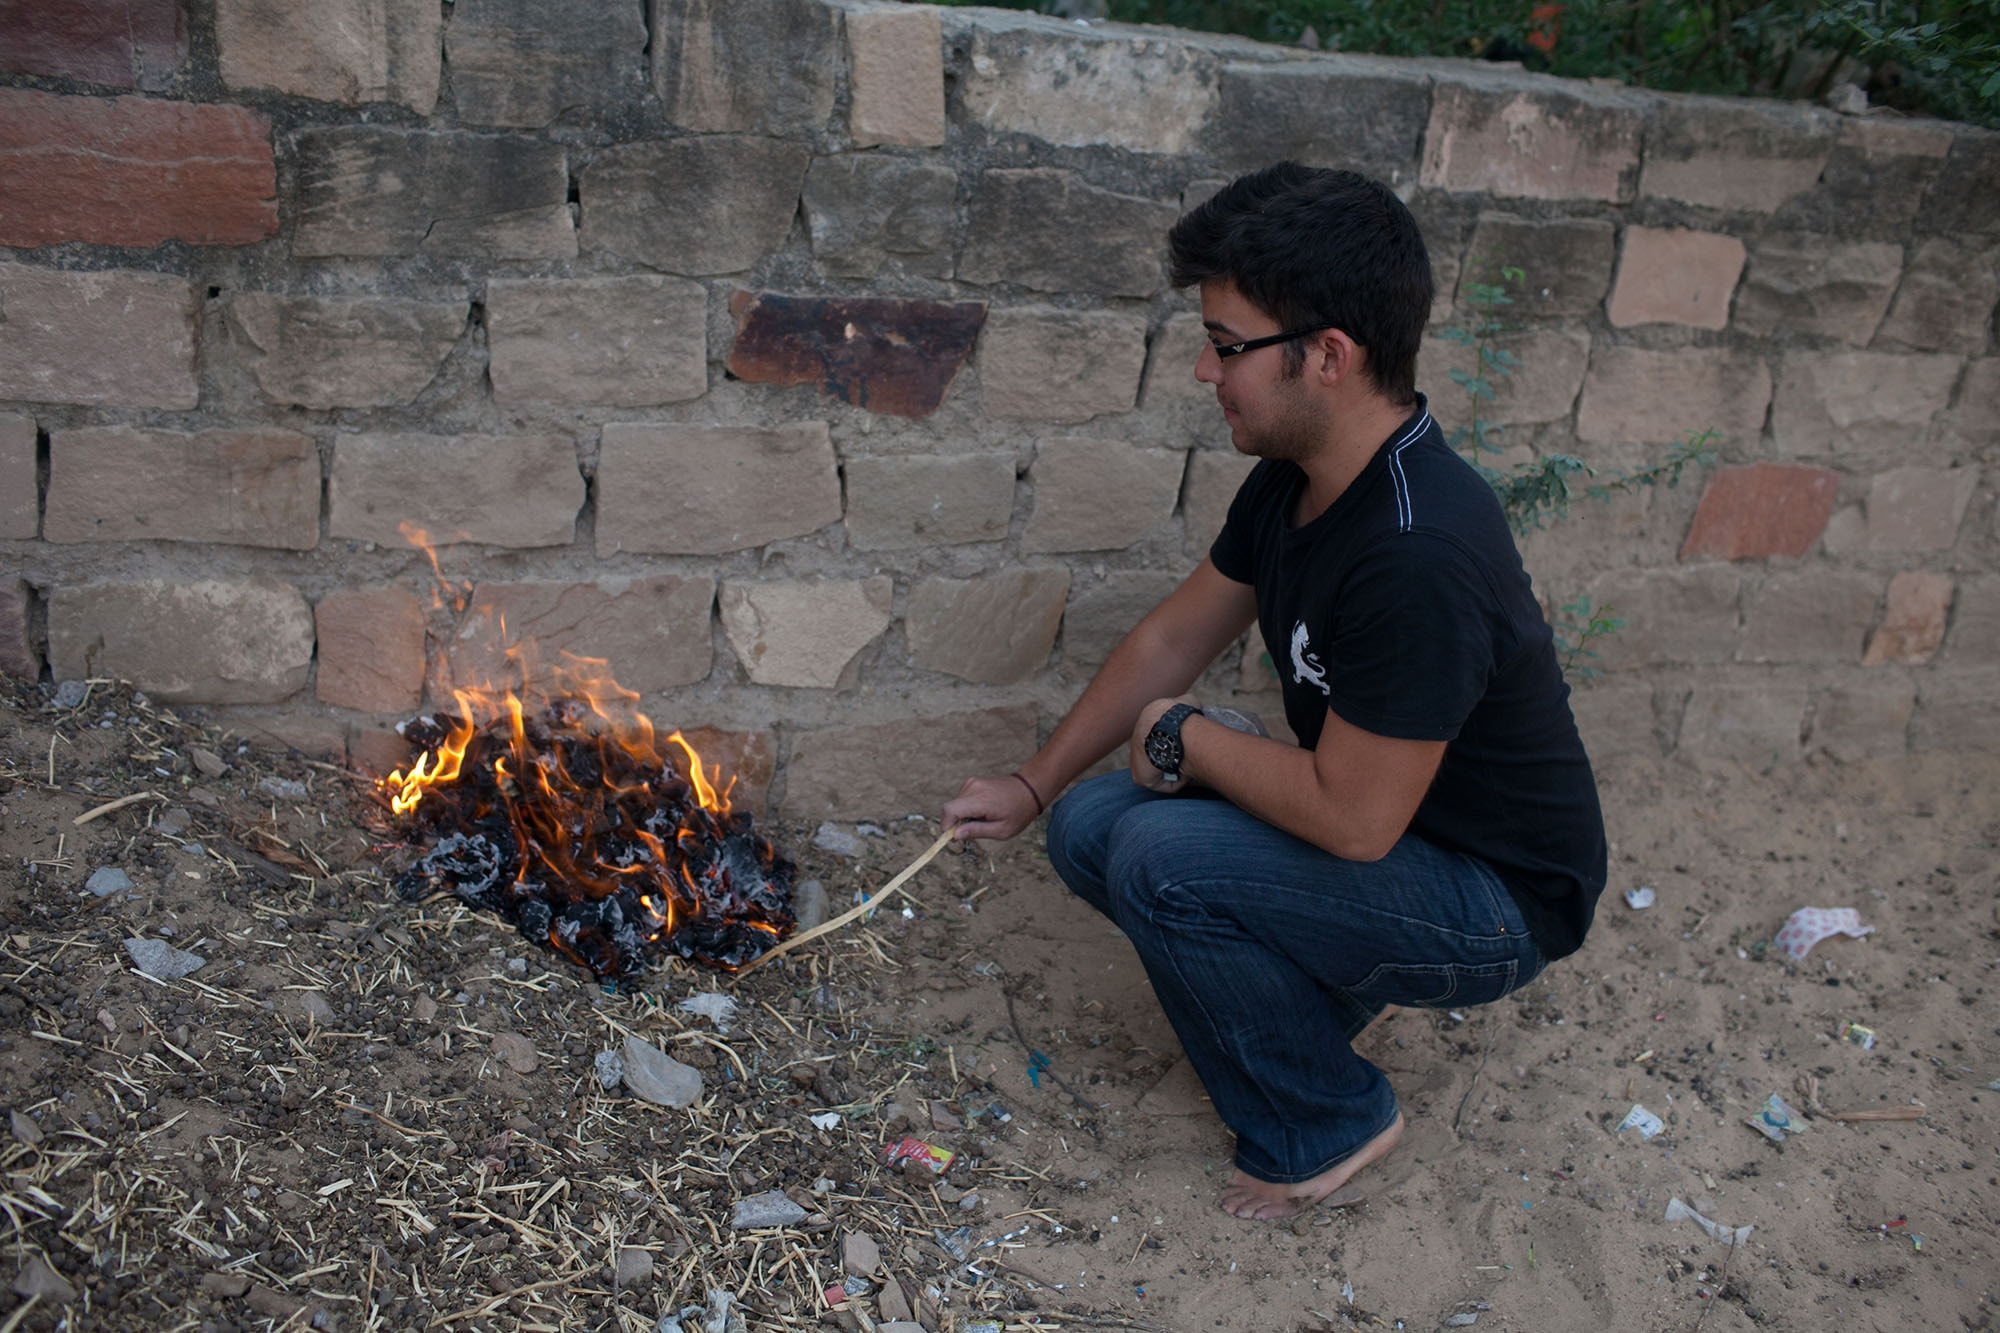 Burning toilet paper in India: Burning two weeks of used toilet paper in Setrawa, India.